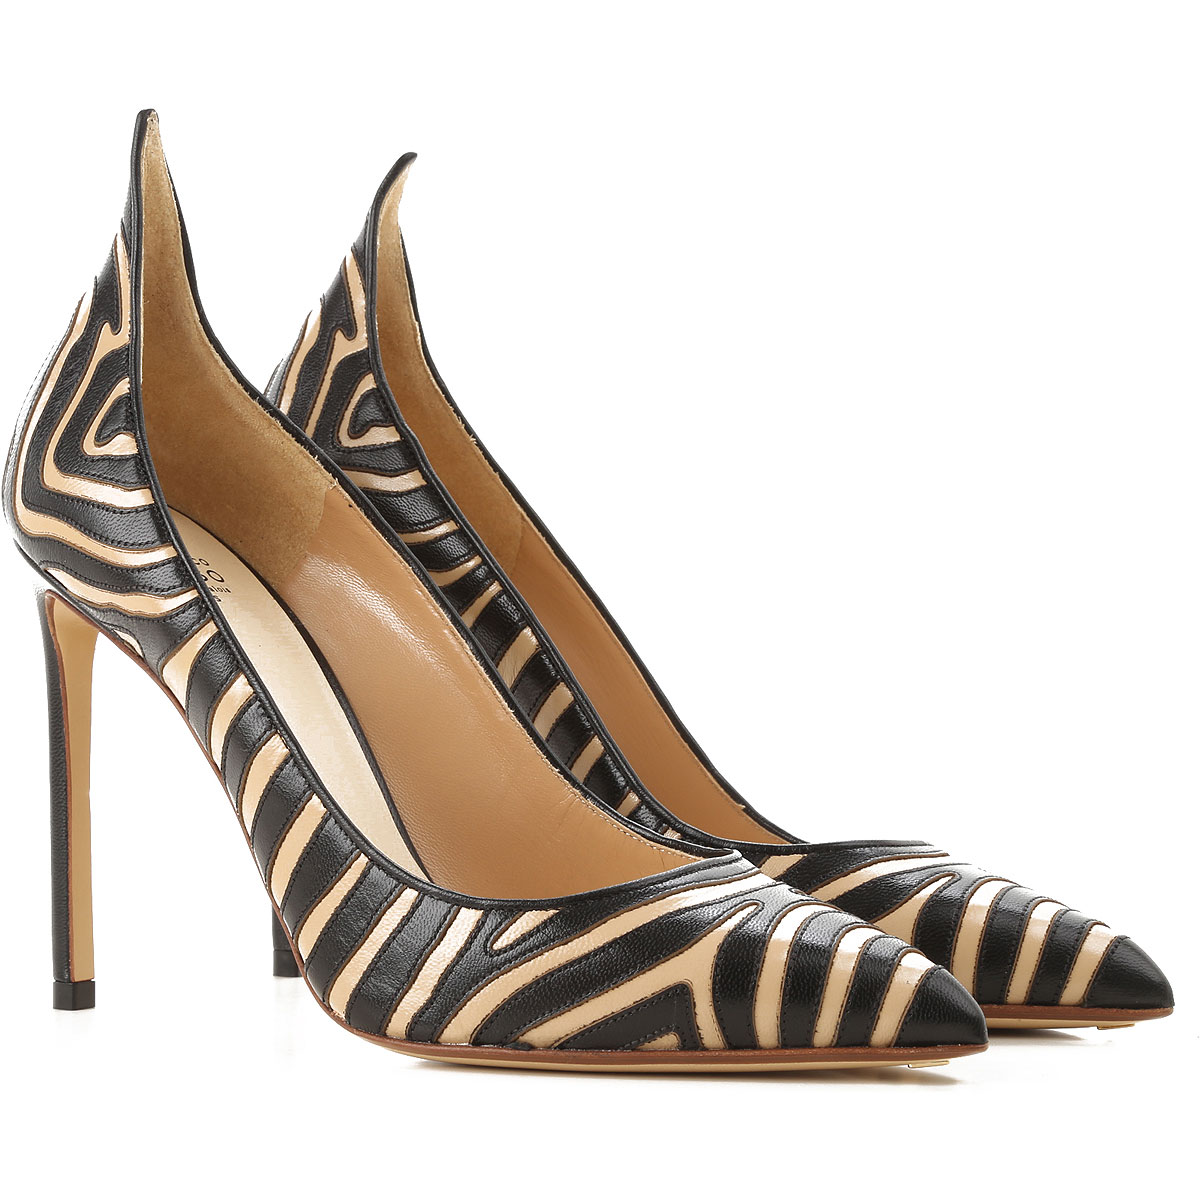 Francesco Russo Pumps & High Heels for Women in Outlet Sand USA - GOOFASH